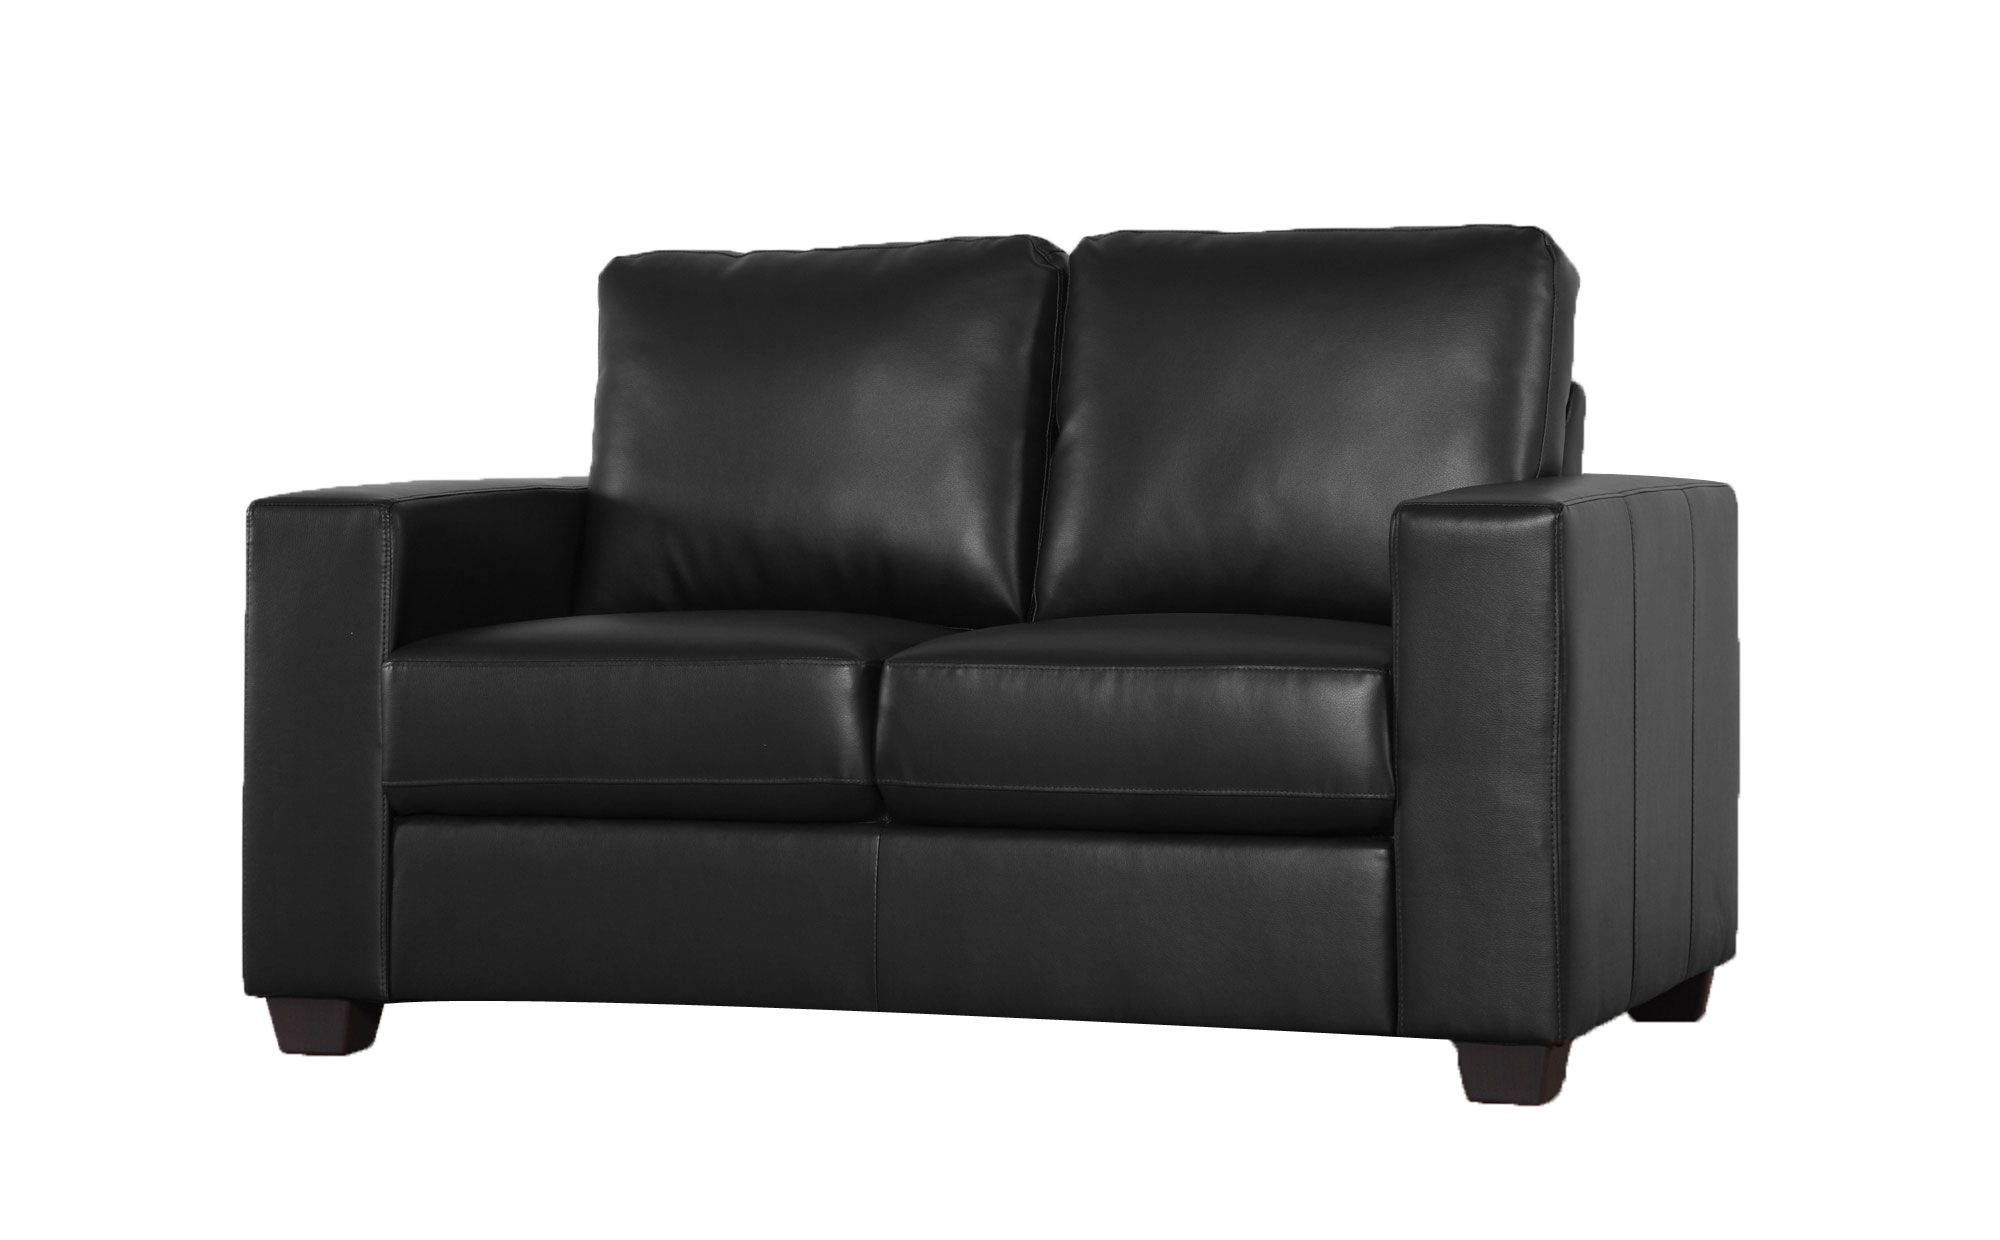 Mission Black 2 Seater Leather Sofa Range £270 | Leather ...